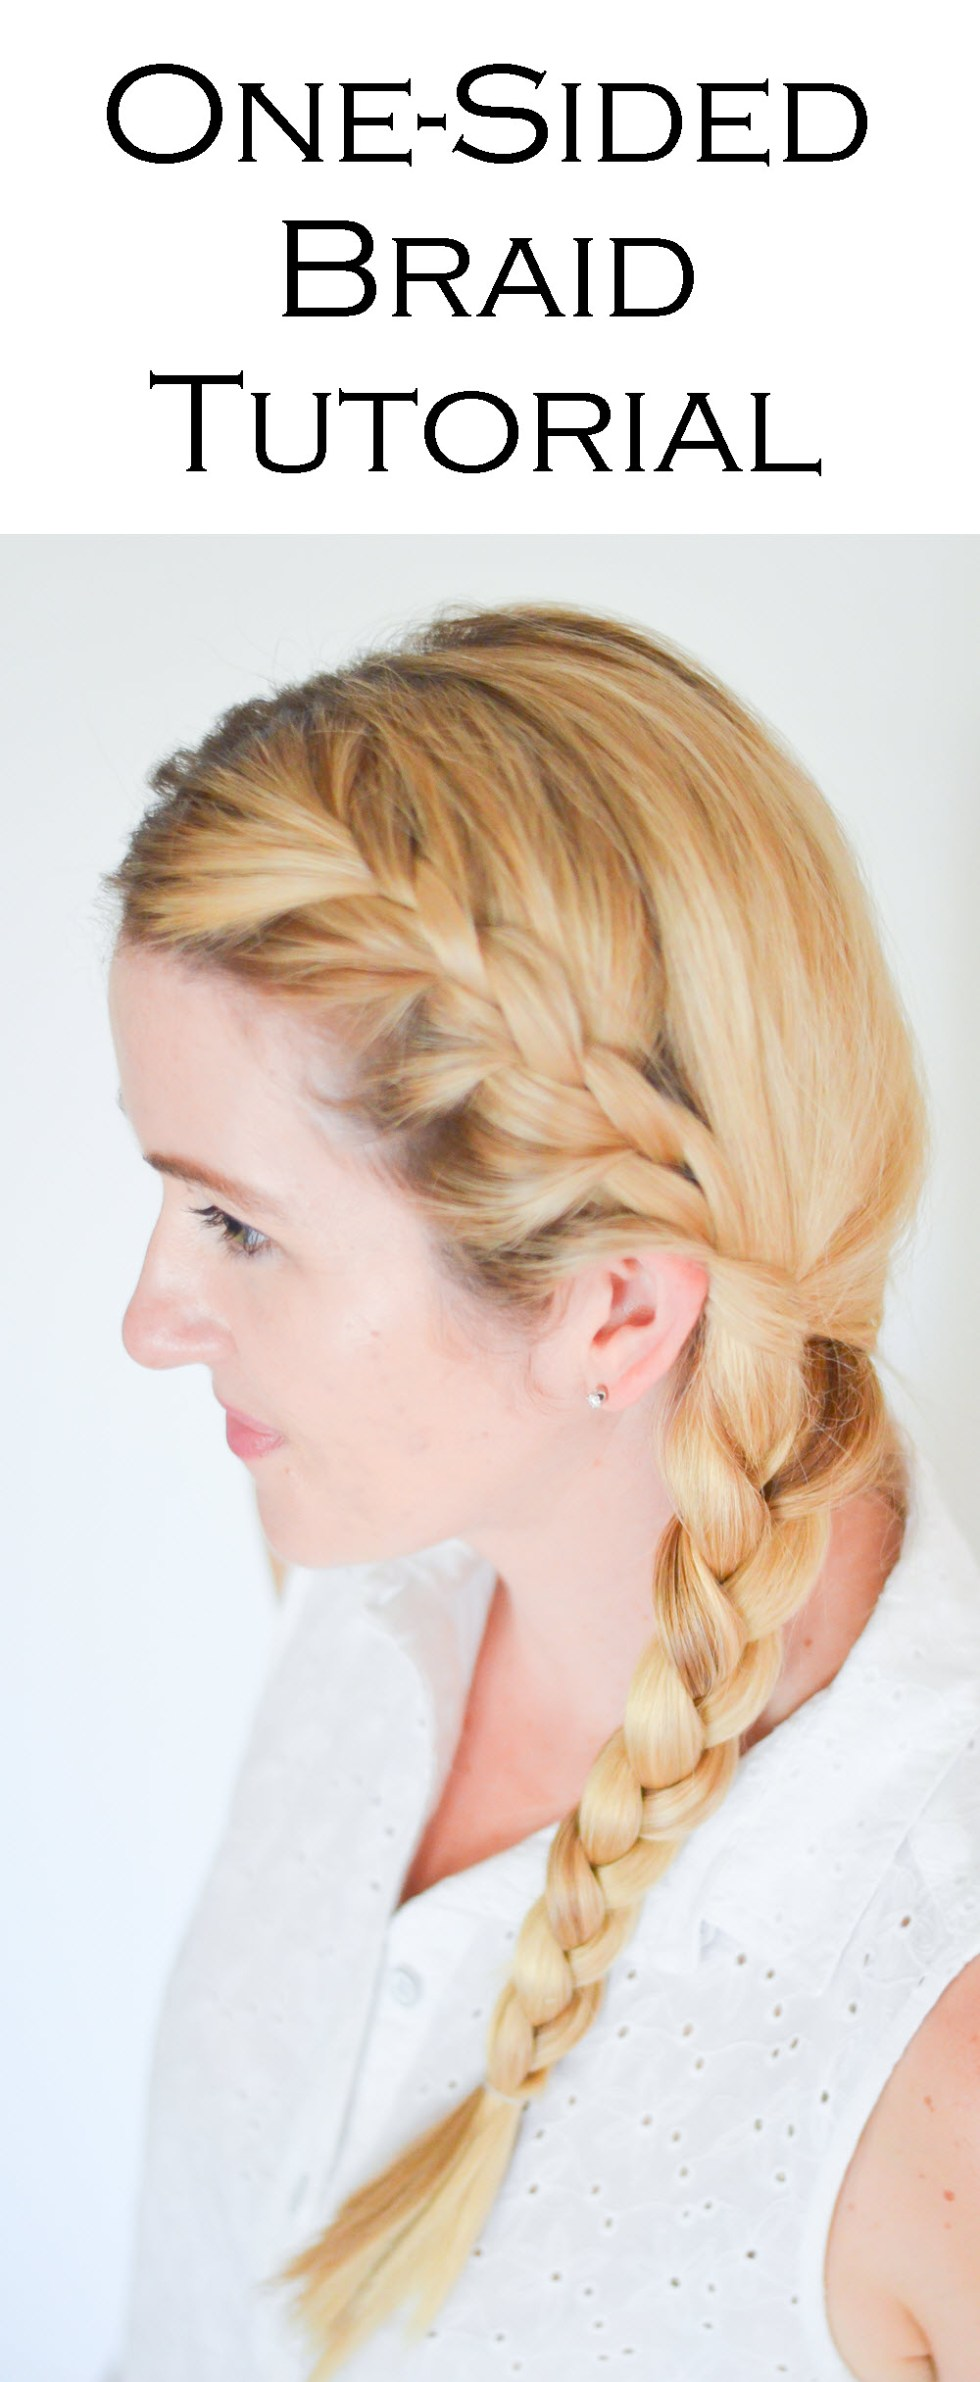 One-Sided Braid Tutorial